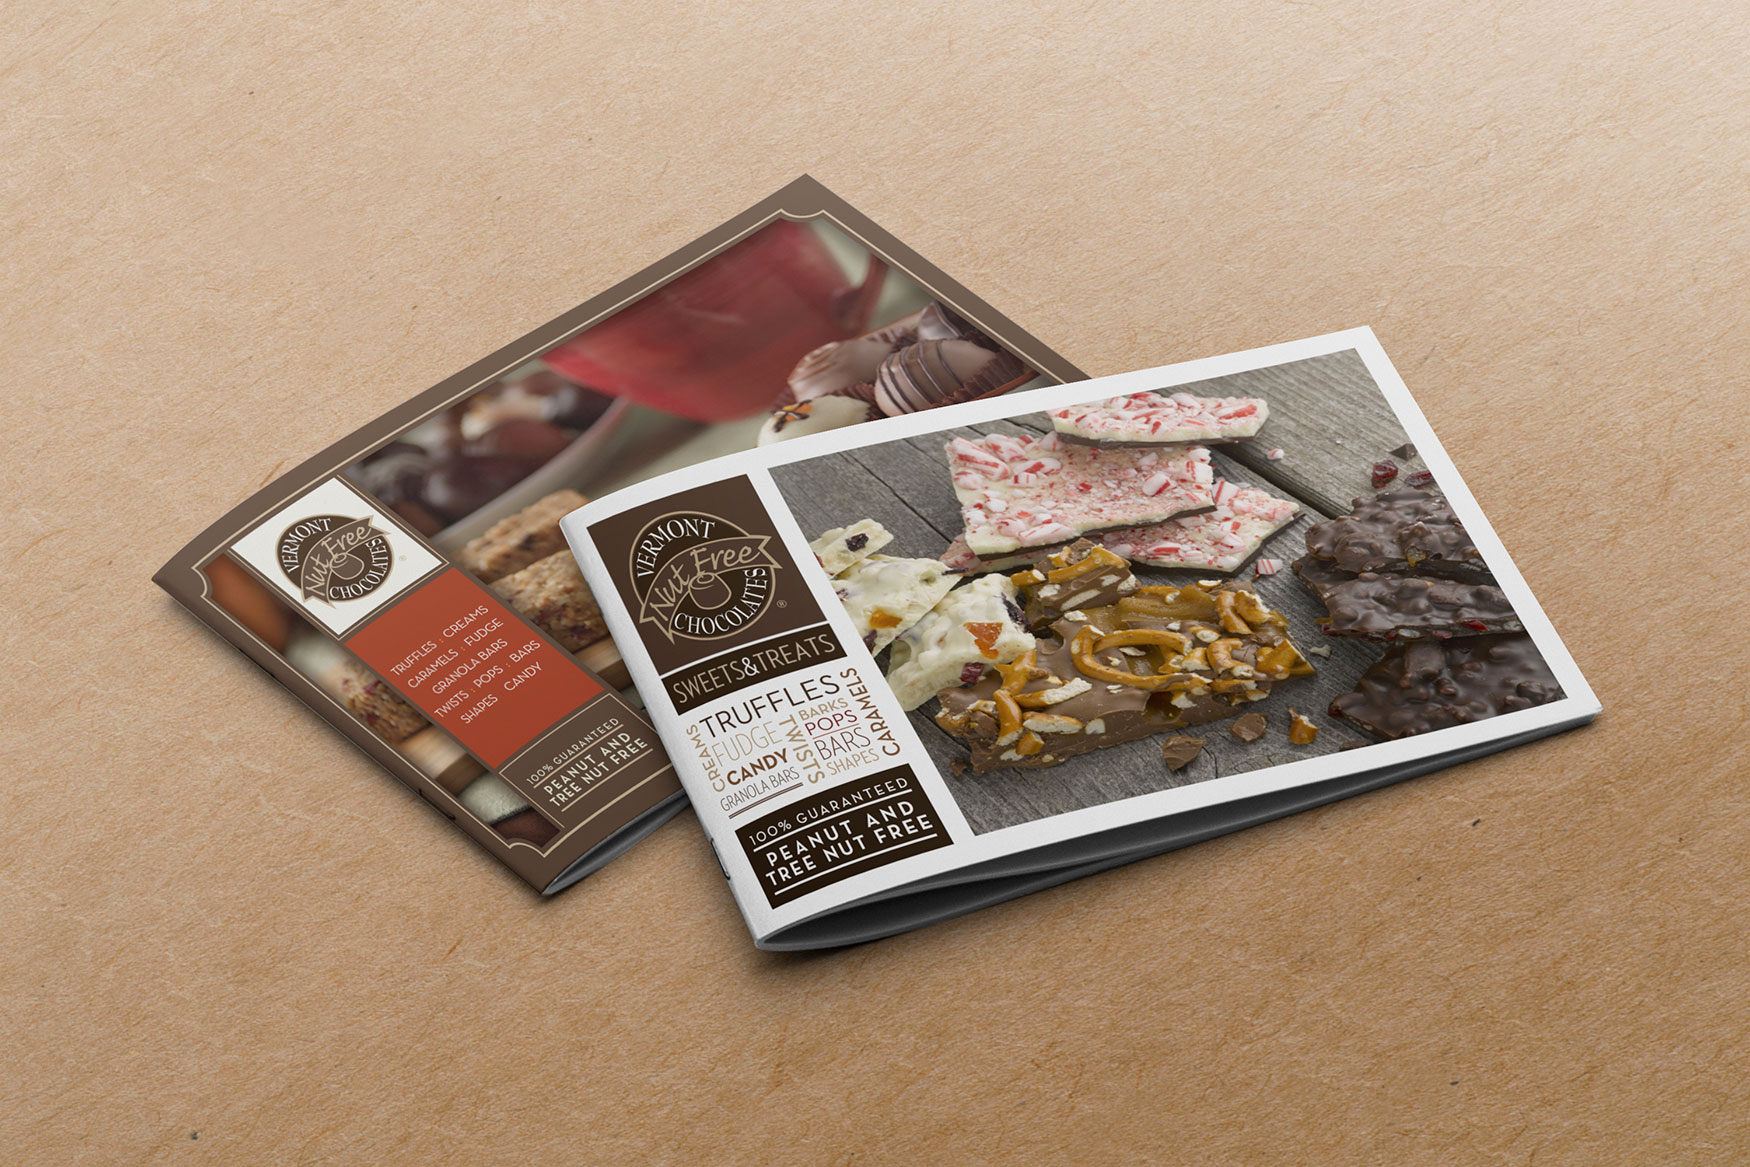 Vermont Nut Free Collateral Design